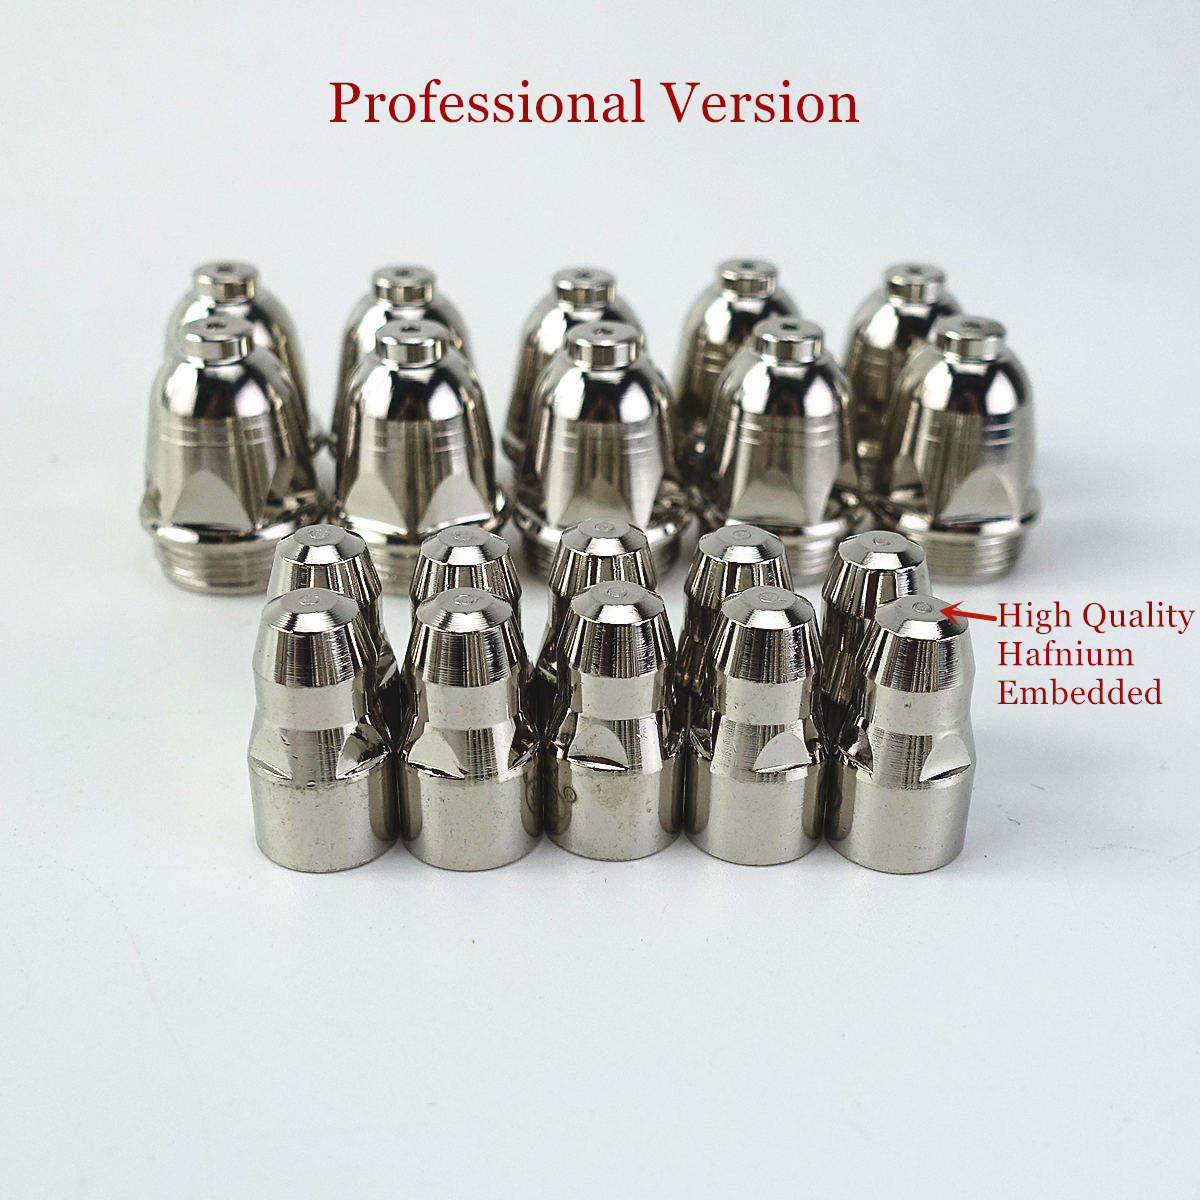 20pcs P80 Plasma Cutting Torch Consumable Cutting 60A 80A 100A P80 CNC Plasma Torch Tip Electrode Nozzle